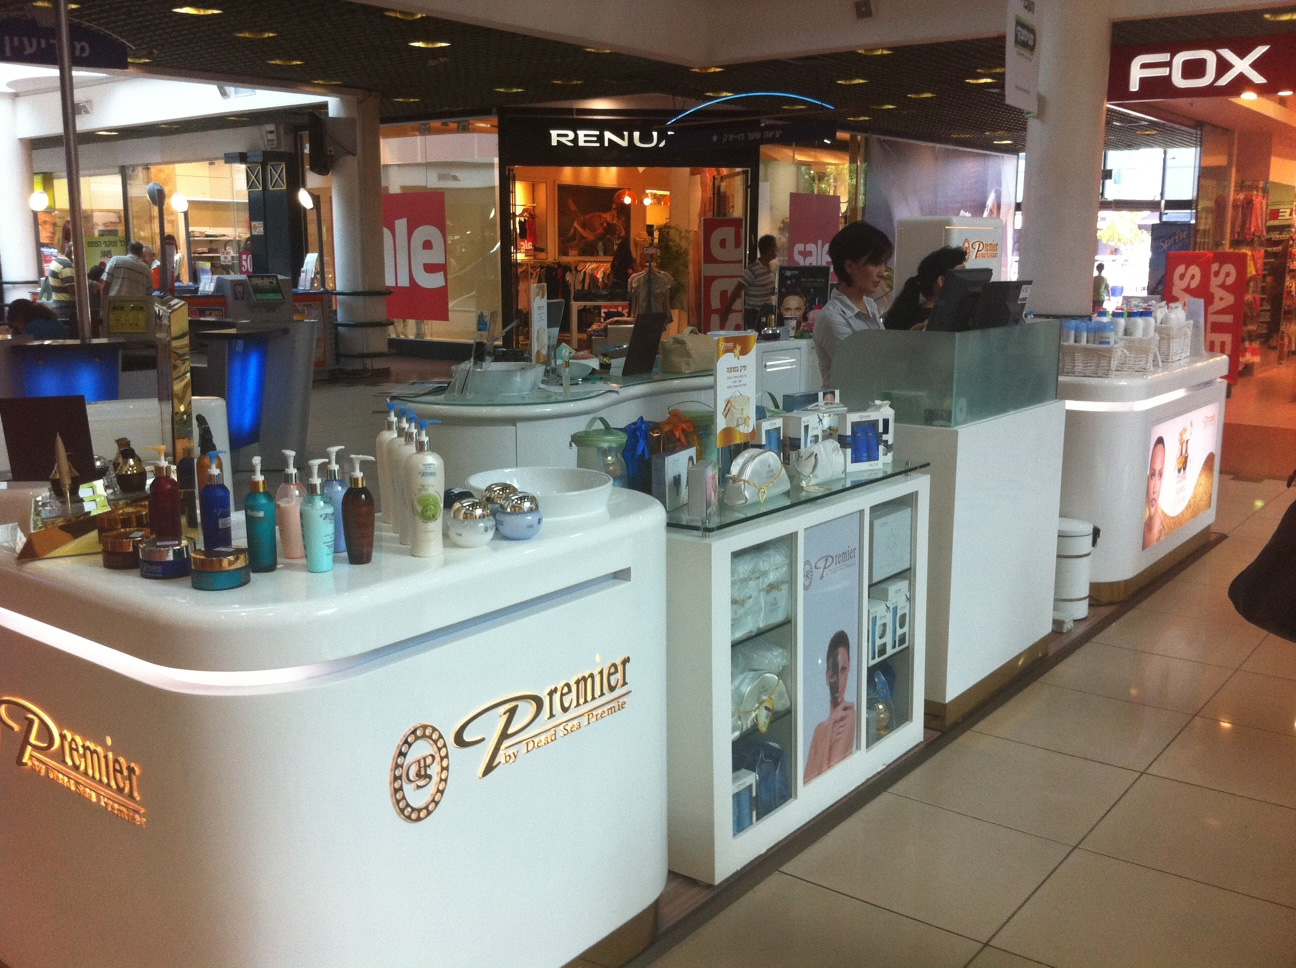 commercial retail display counter for premier skincare